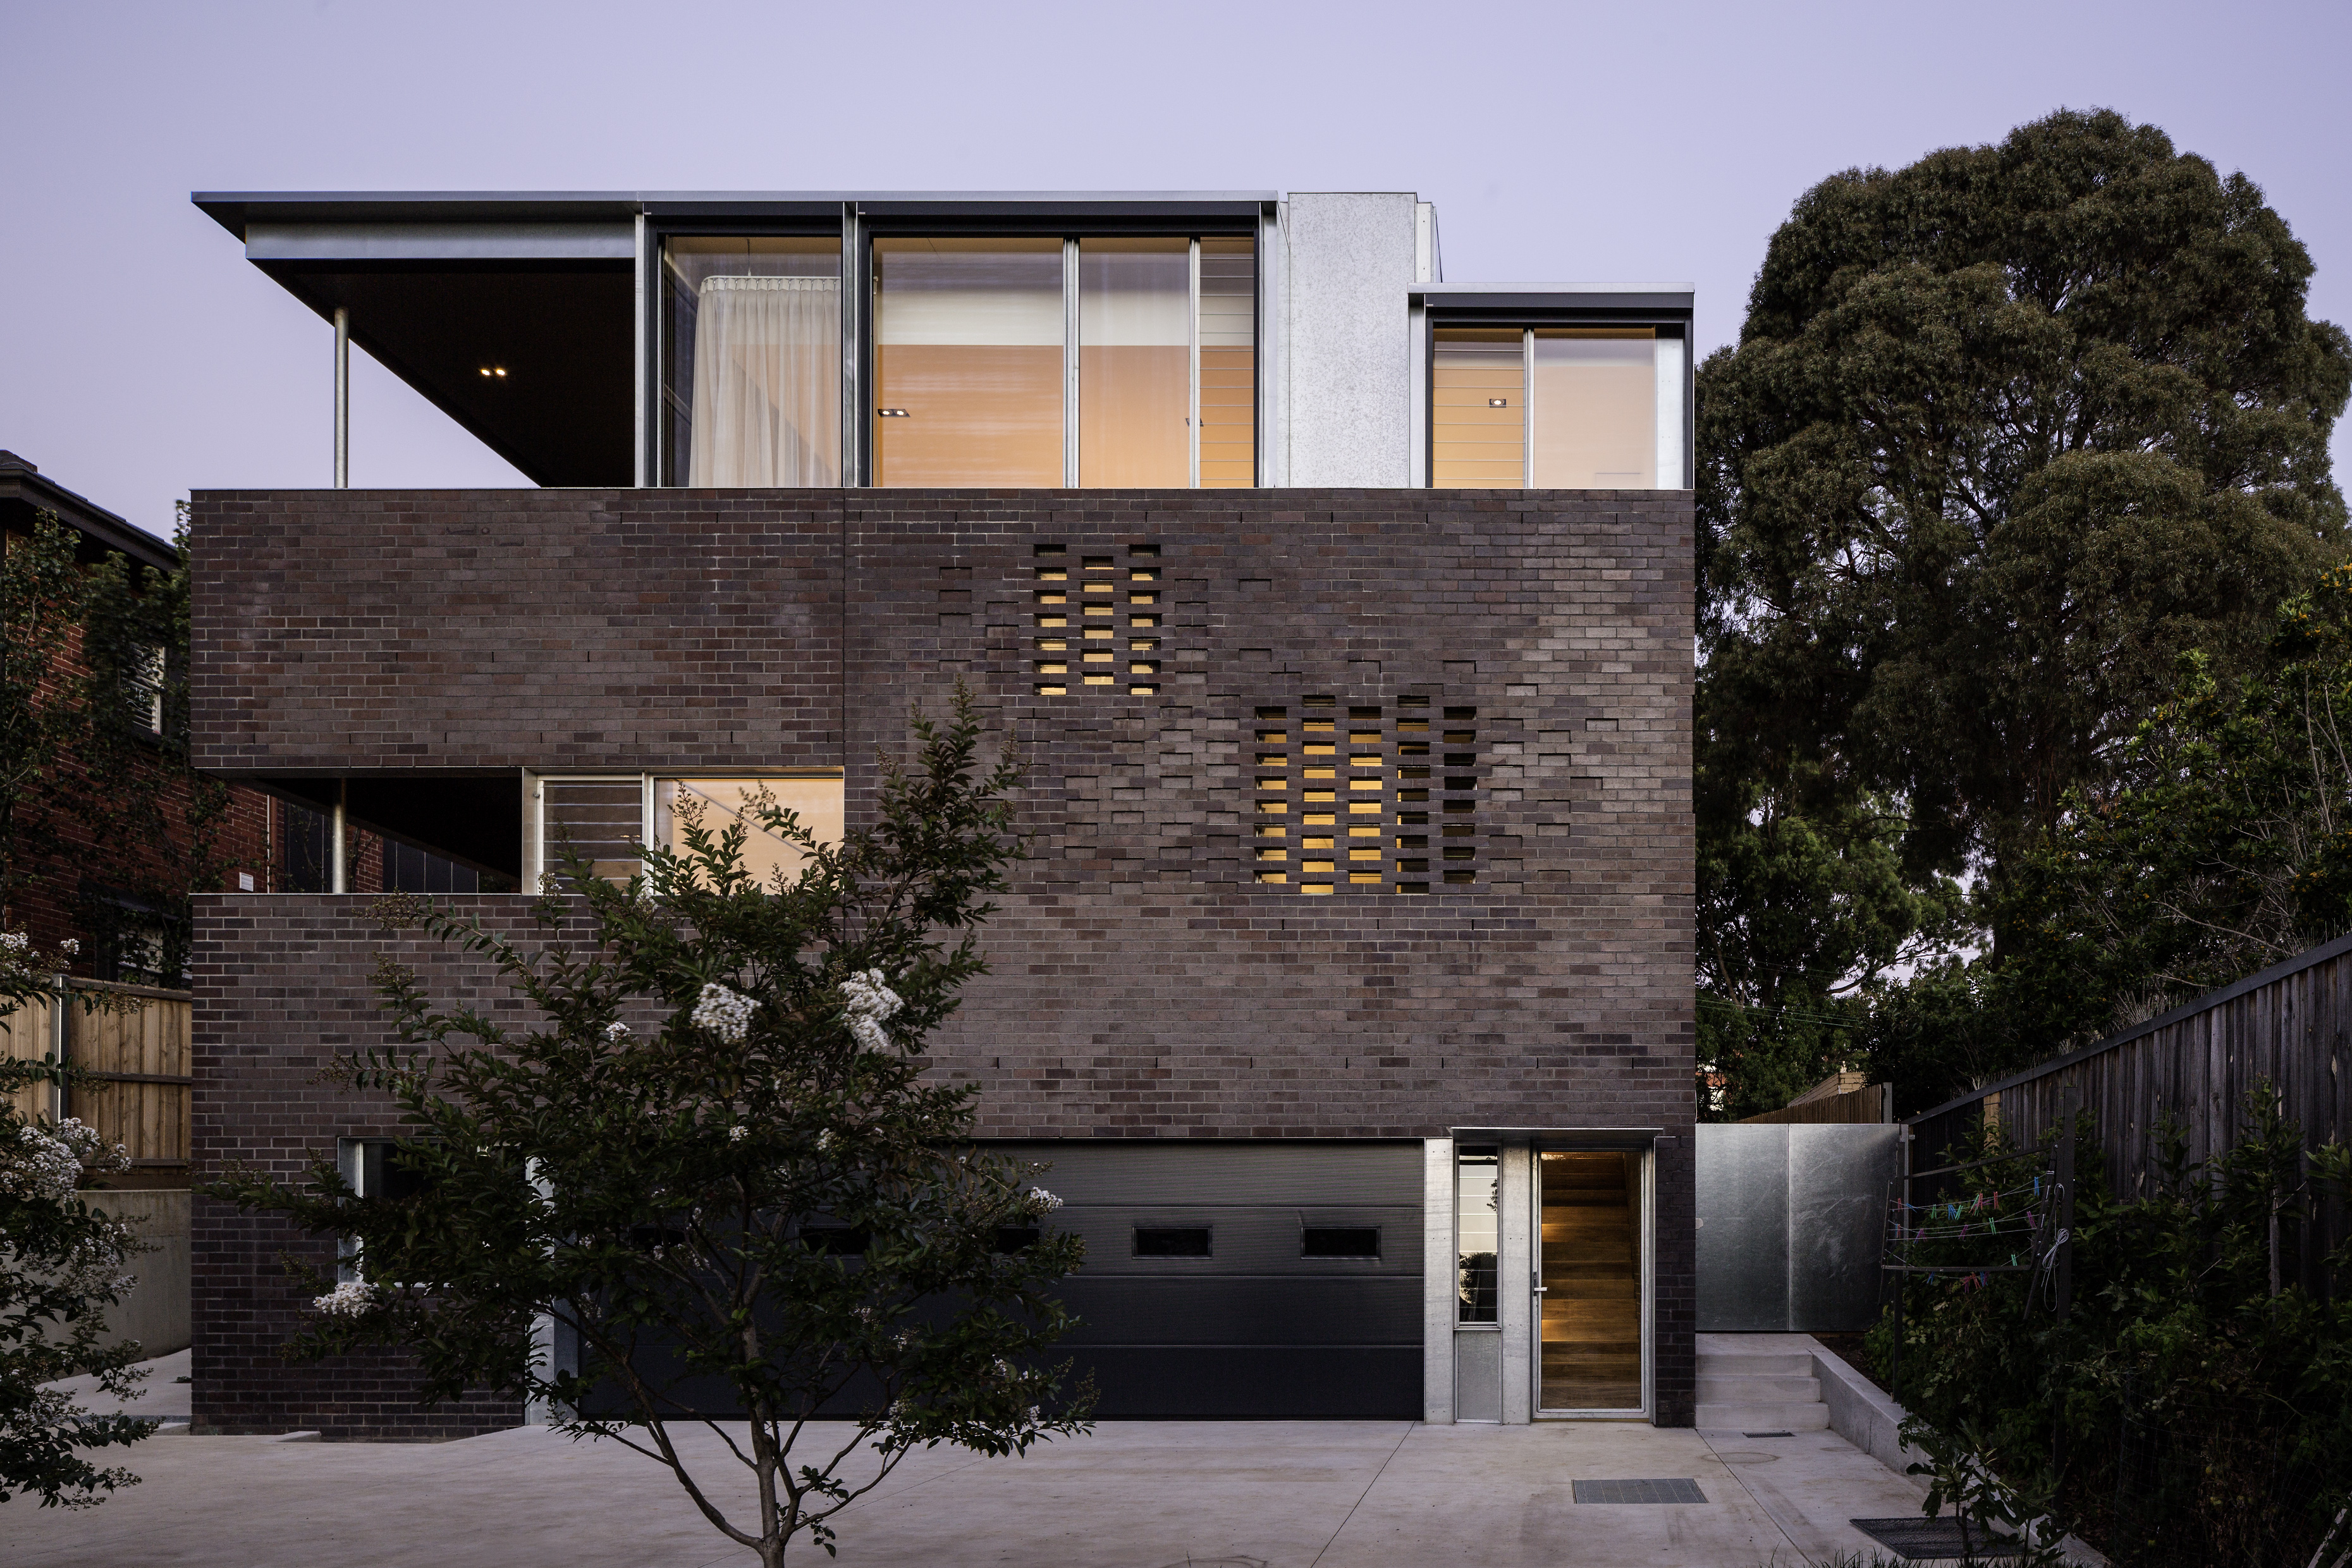 West Hawthorn House by Robert Simeoni Architects. Image by Trevor Mein.